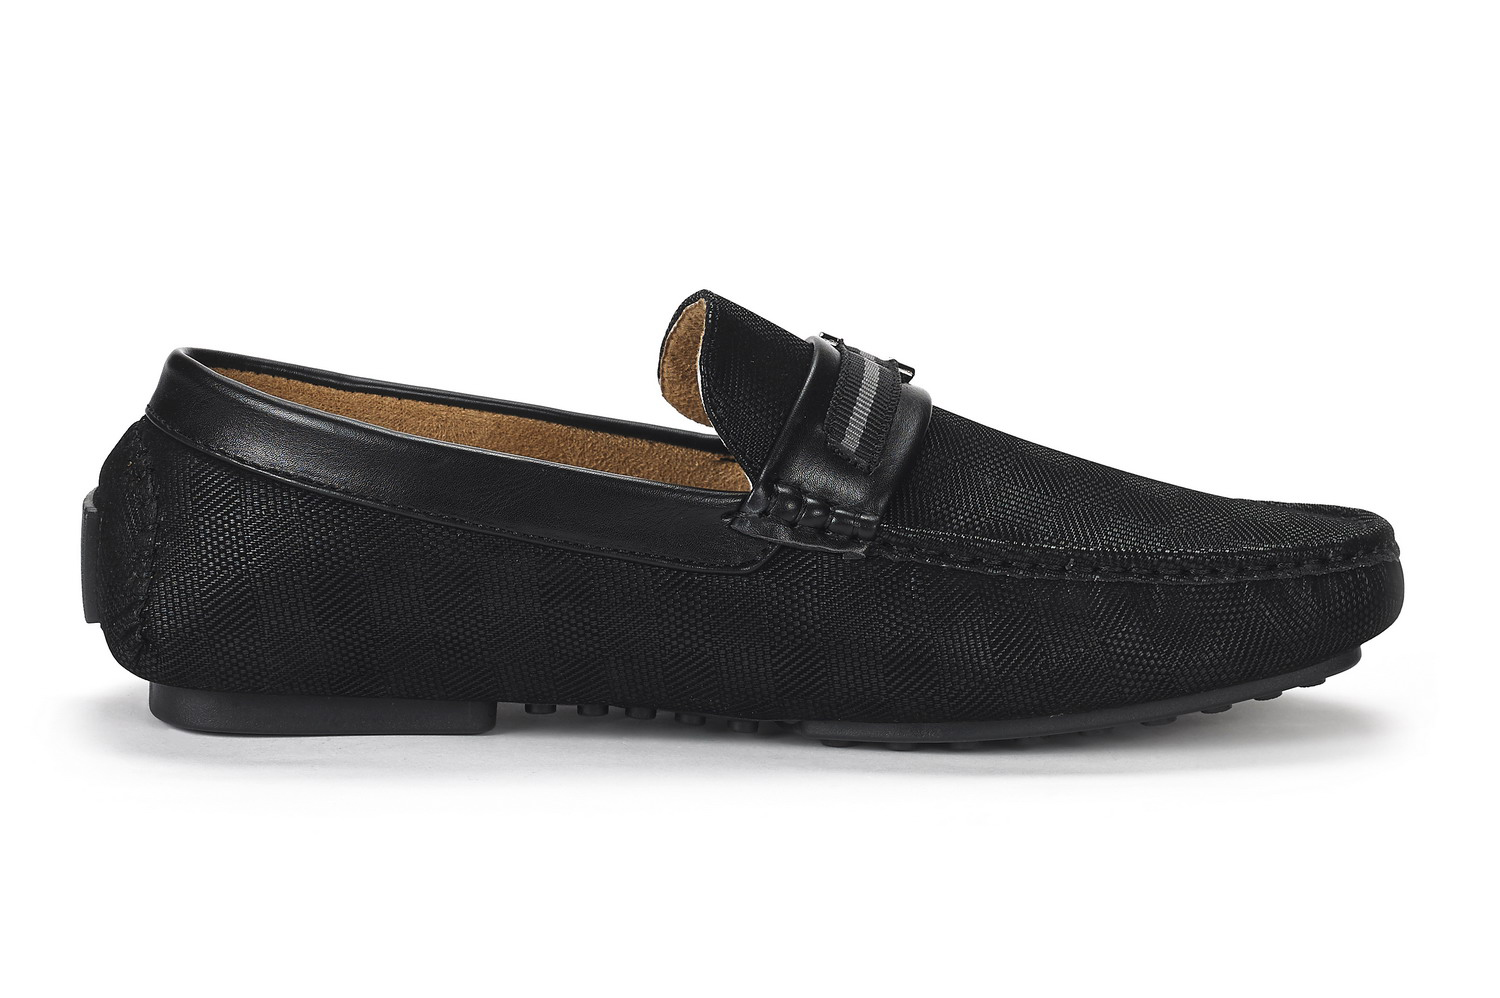 Bruno-Marc-Men-Casual-Driving-Loafers-Breathable-Antiskid-Slip-On-Moccasins-Shoe thumbnail 12